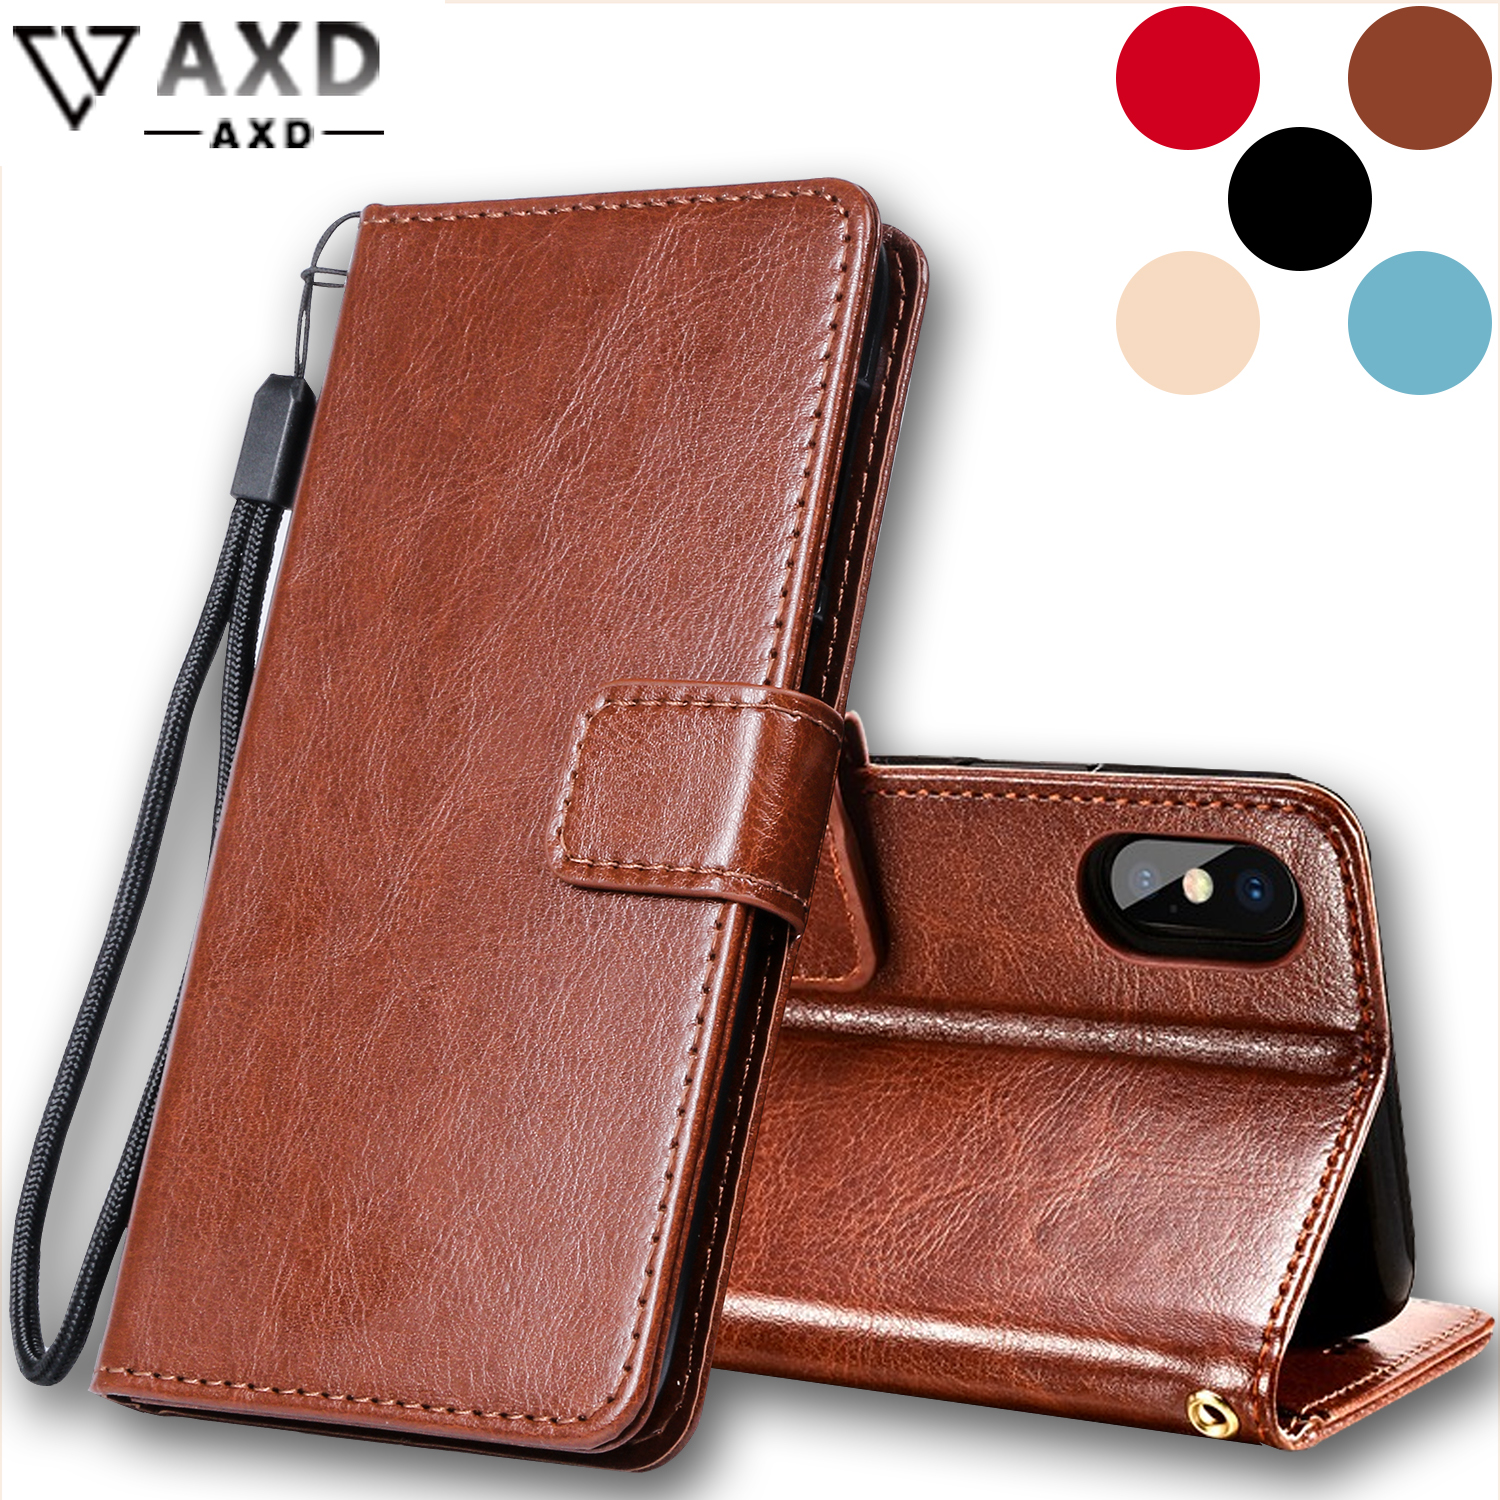 <font><b>Flip</b></font> phone leather <font><b>case</b></font> for <font><b>OnePlus</b></font> 1 2 3 <font><b>3T</b></font> 5 5T 6 6T X wallet style protective coque Stand cover capa for OnePlus3 OnePlus5 image